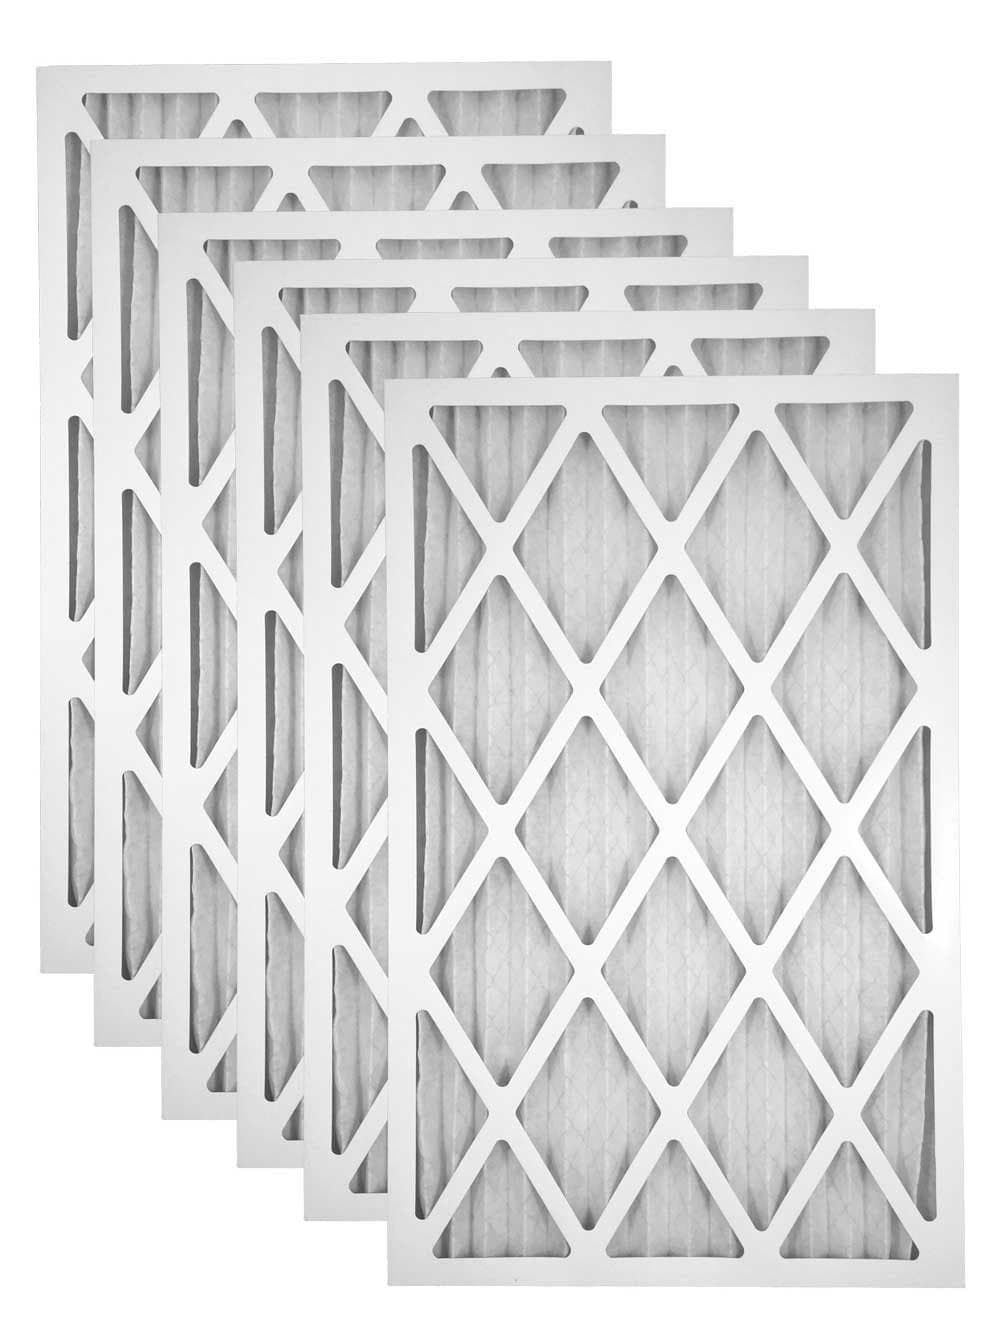 20x20x2 Merv 8 AC Furnace Filter - Case of 6